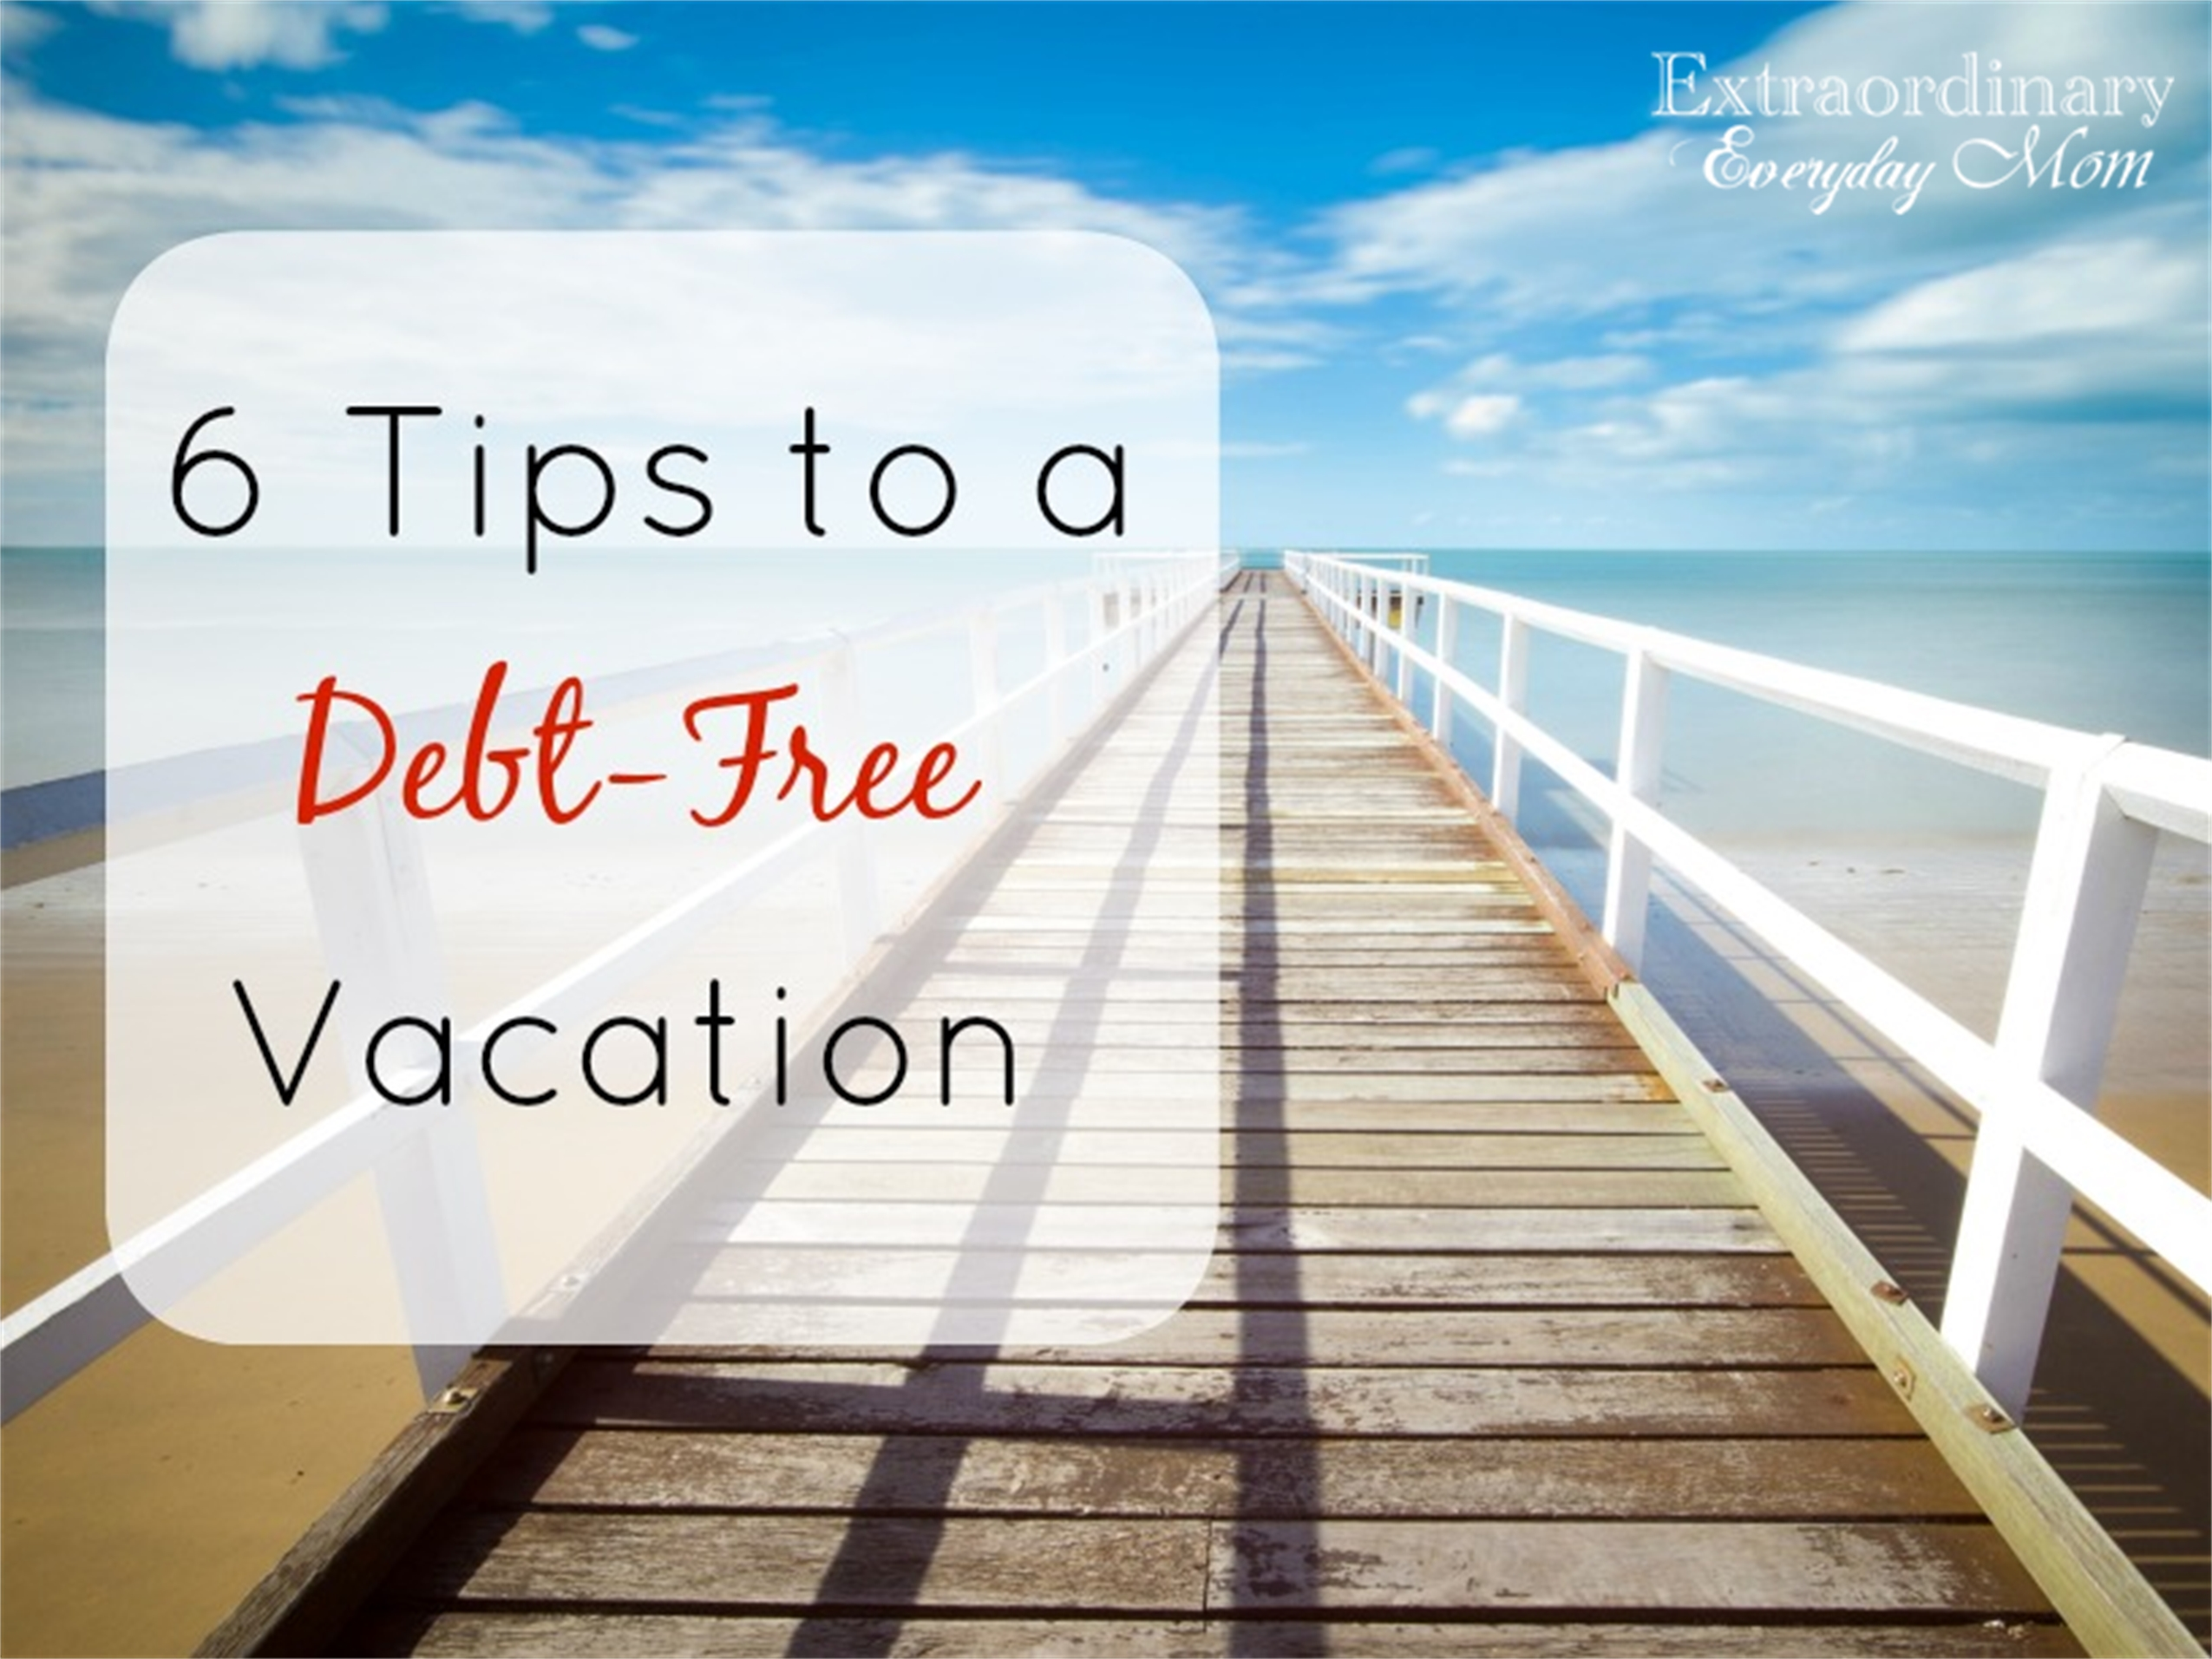 6 Tips to a Debt Free Vacation